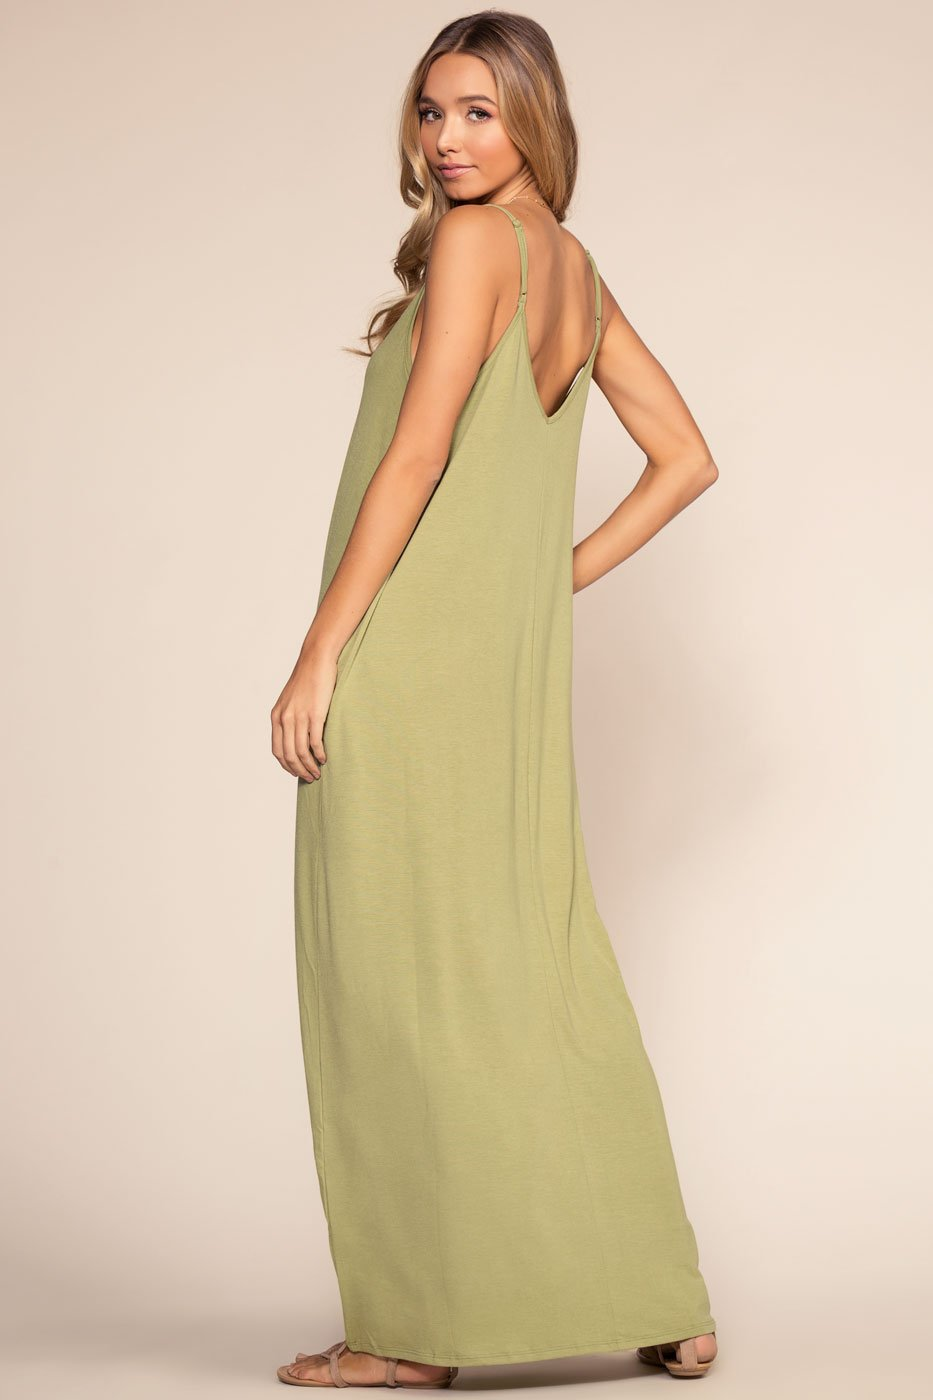 Dresses - Sunup To Sundown Maxi Dress - Sage